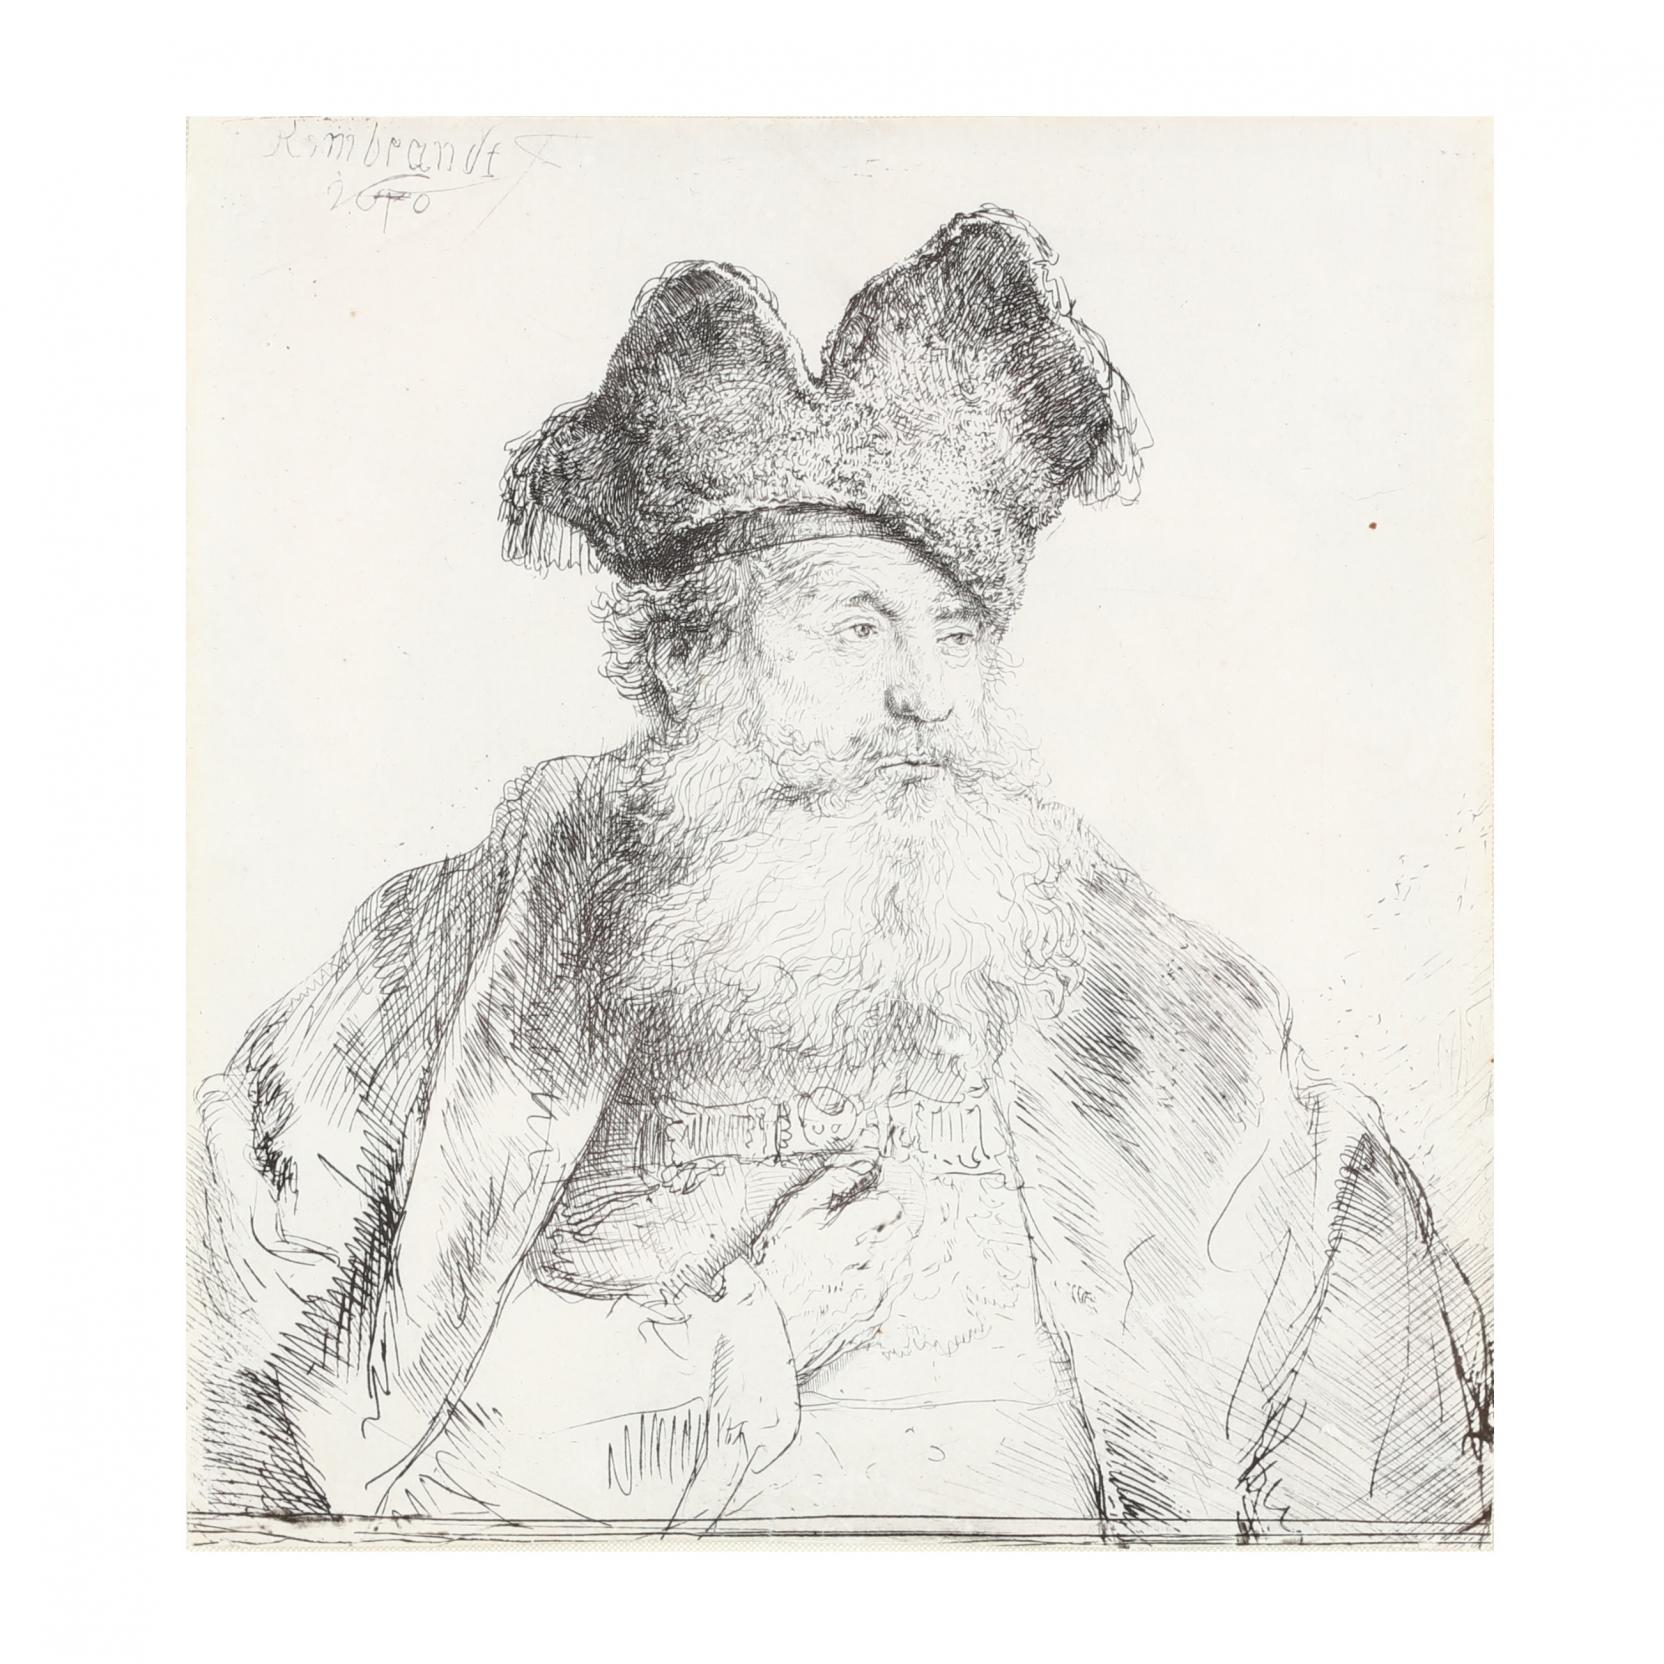 rembrandt-van-rijn-dutch-1606-1669-i-old-man-with-a-divided-fur-cap-i